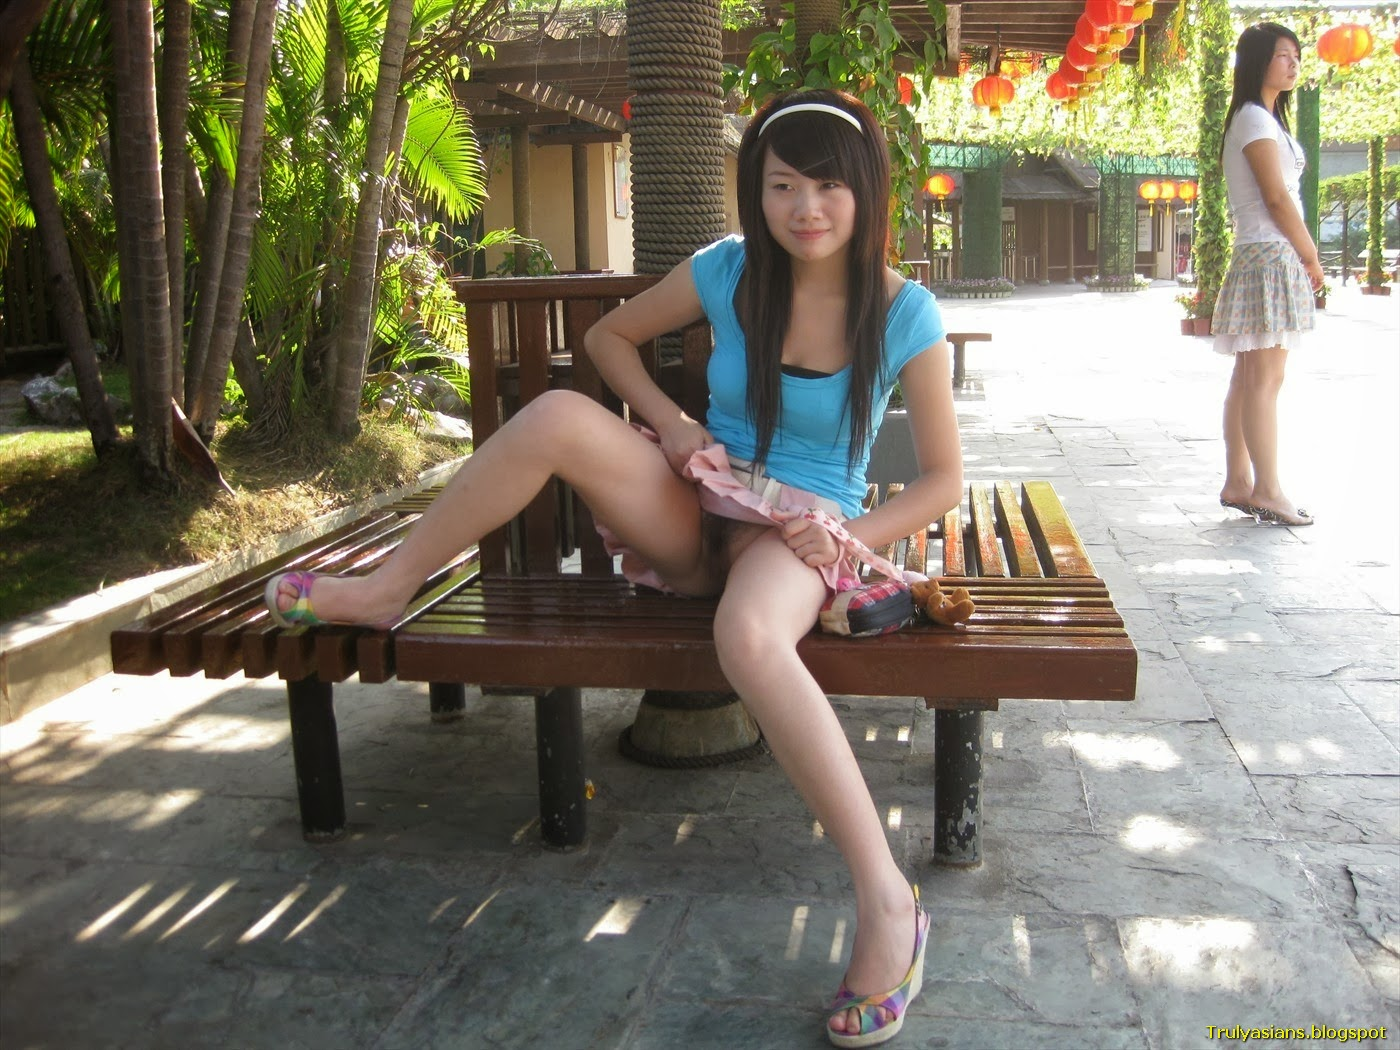 Asian amateur chick nude in public